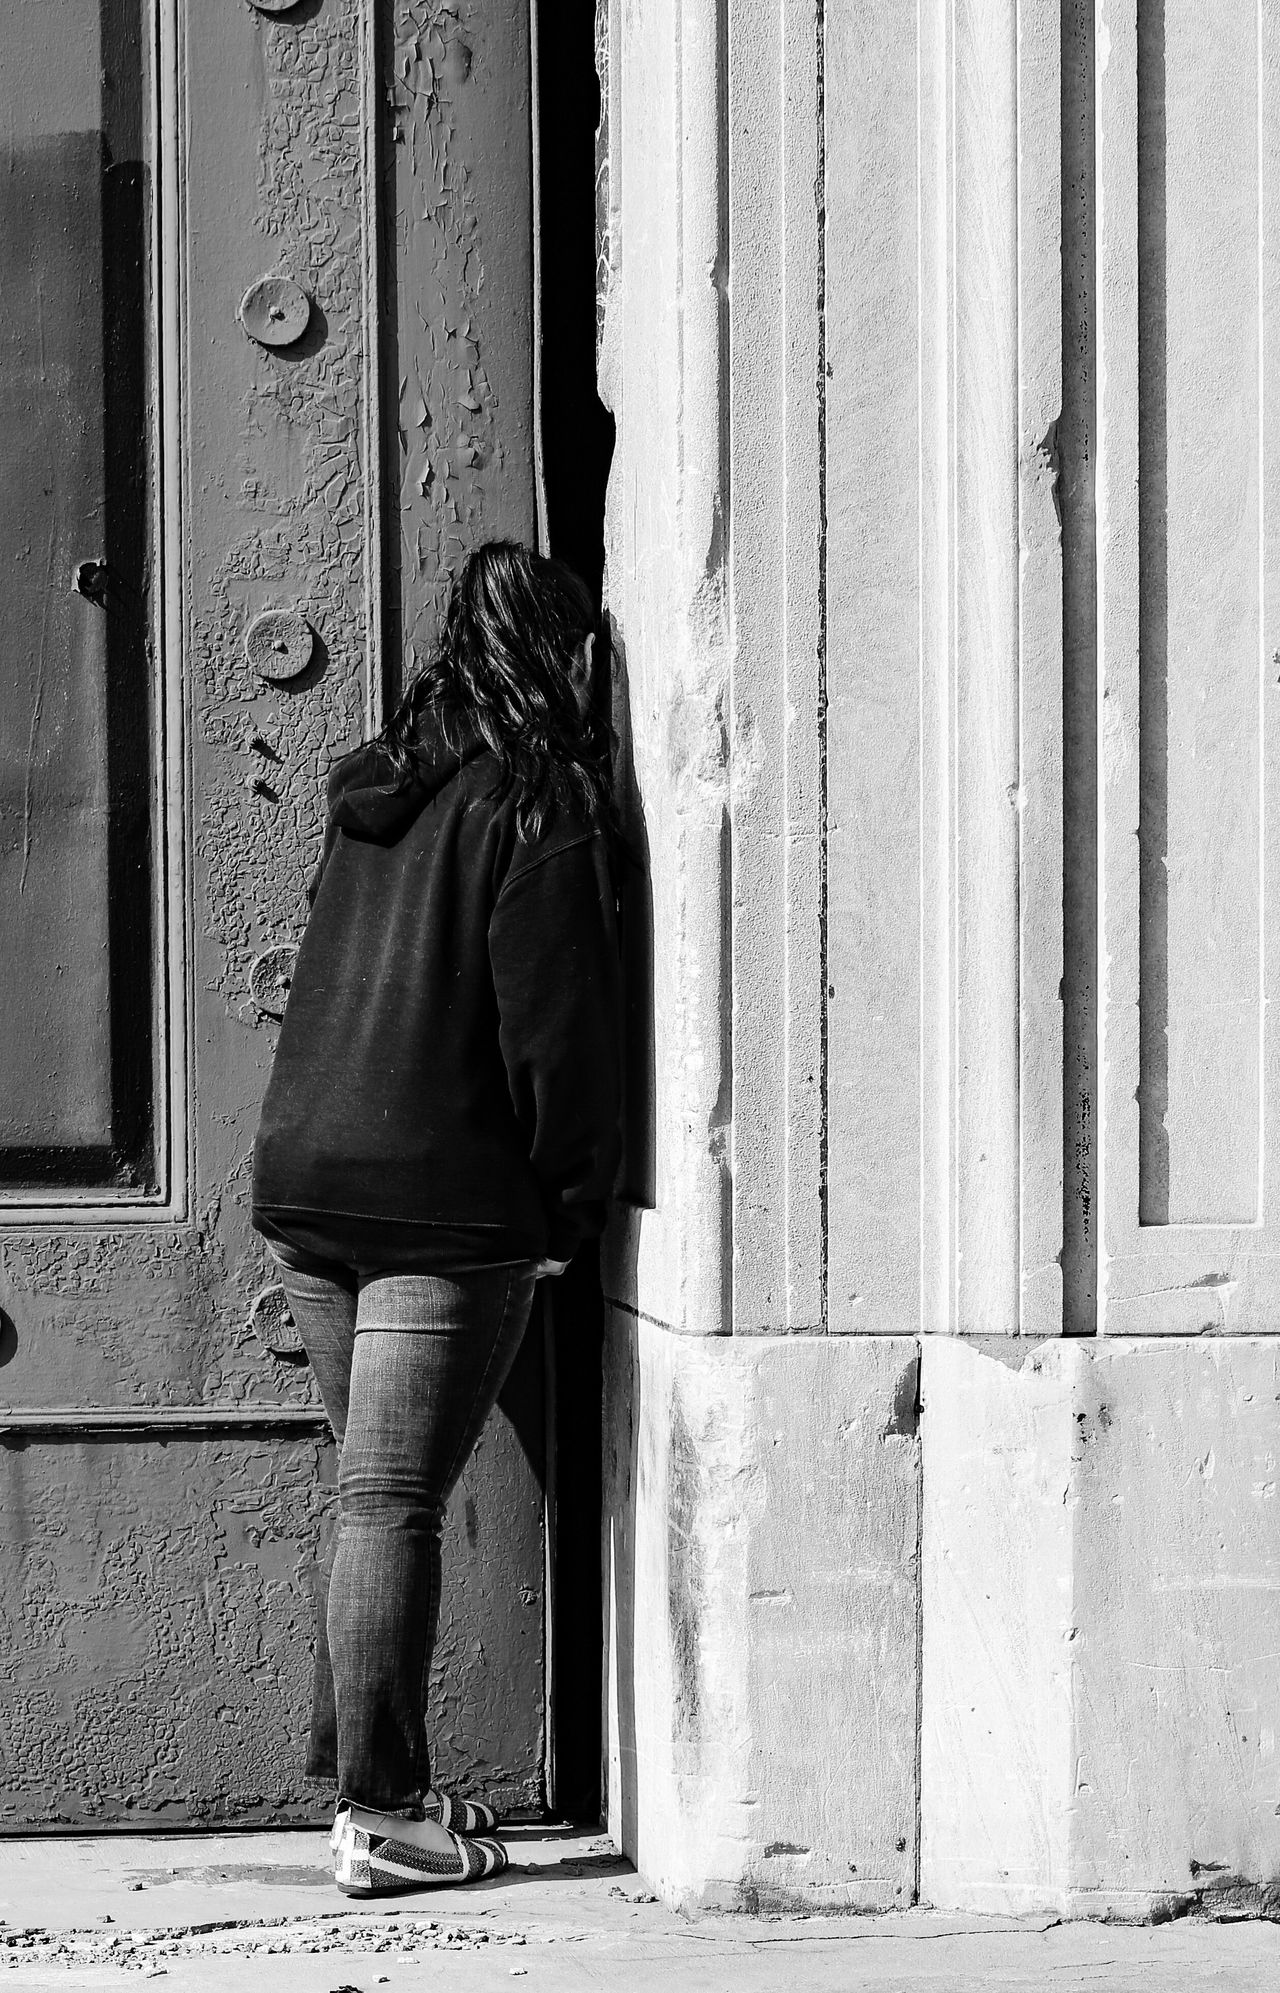 Curiosity. Door Curious Curiosity Full Length Rear View One Person Real People Built Structure Building Exterior Architecture Outdoors Women Standing JGLowe Peeking Baltimore